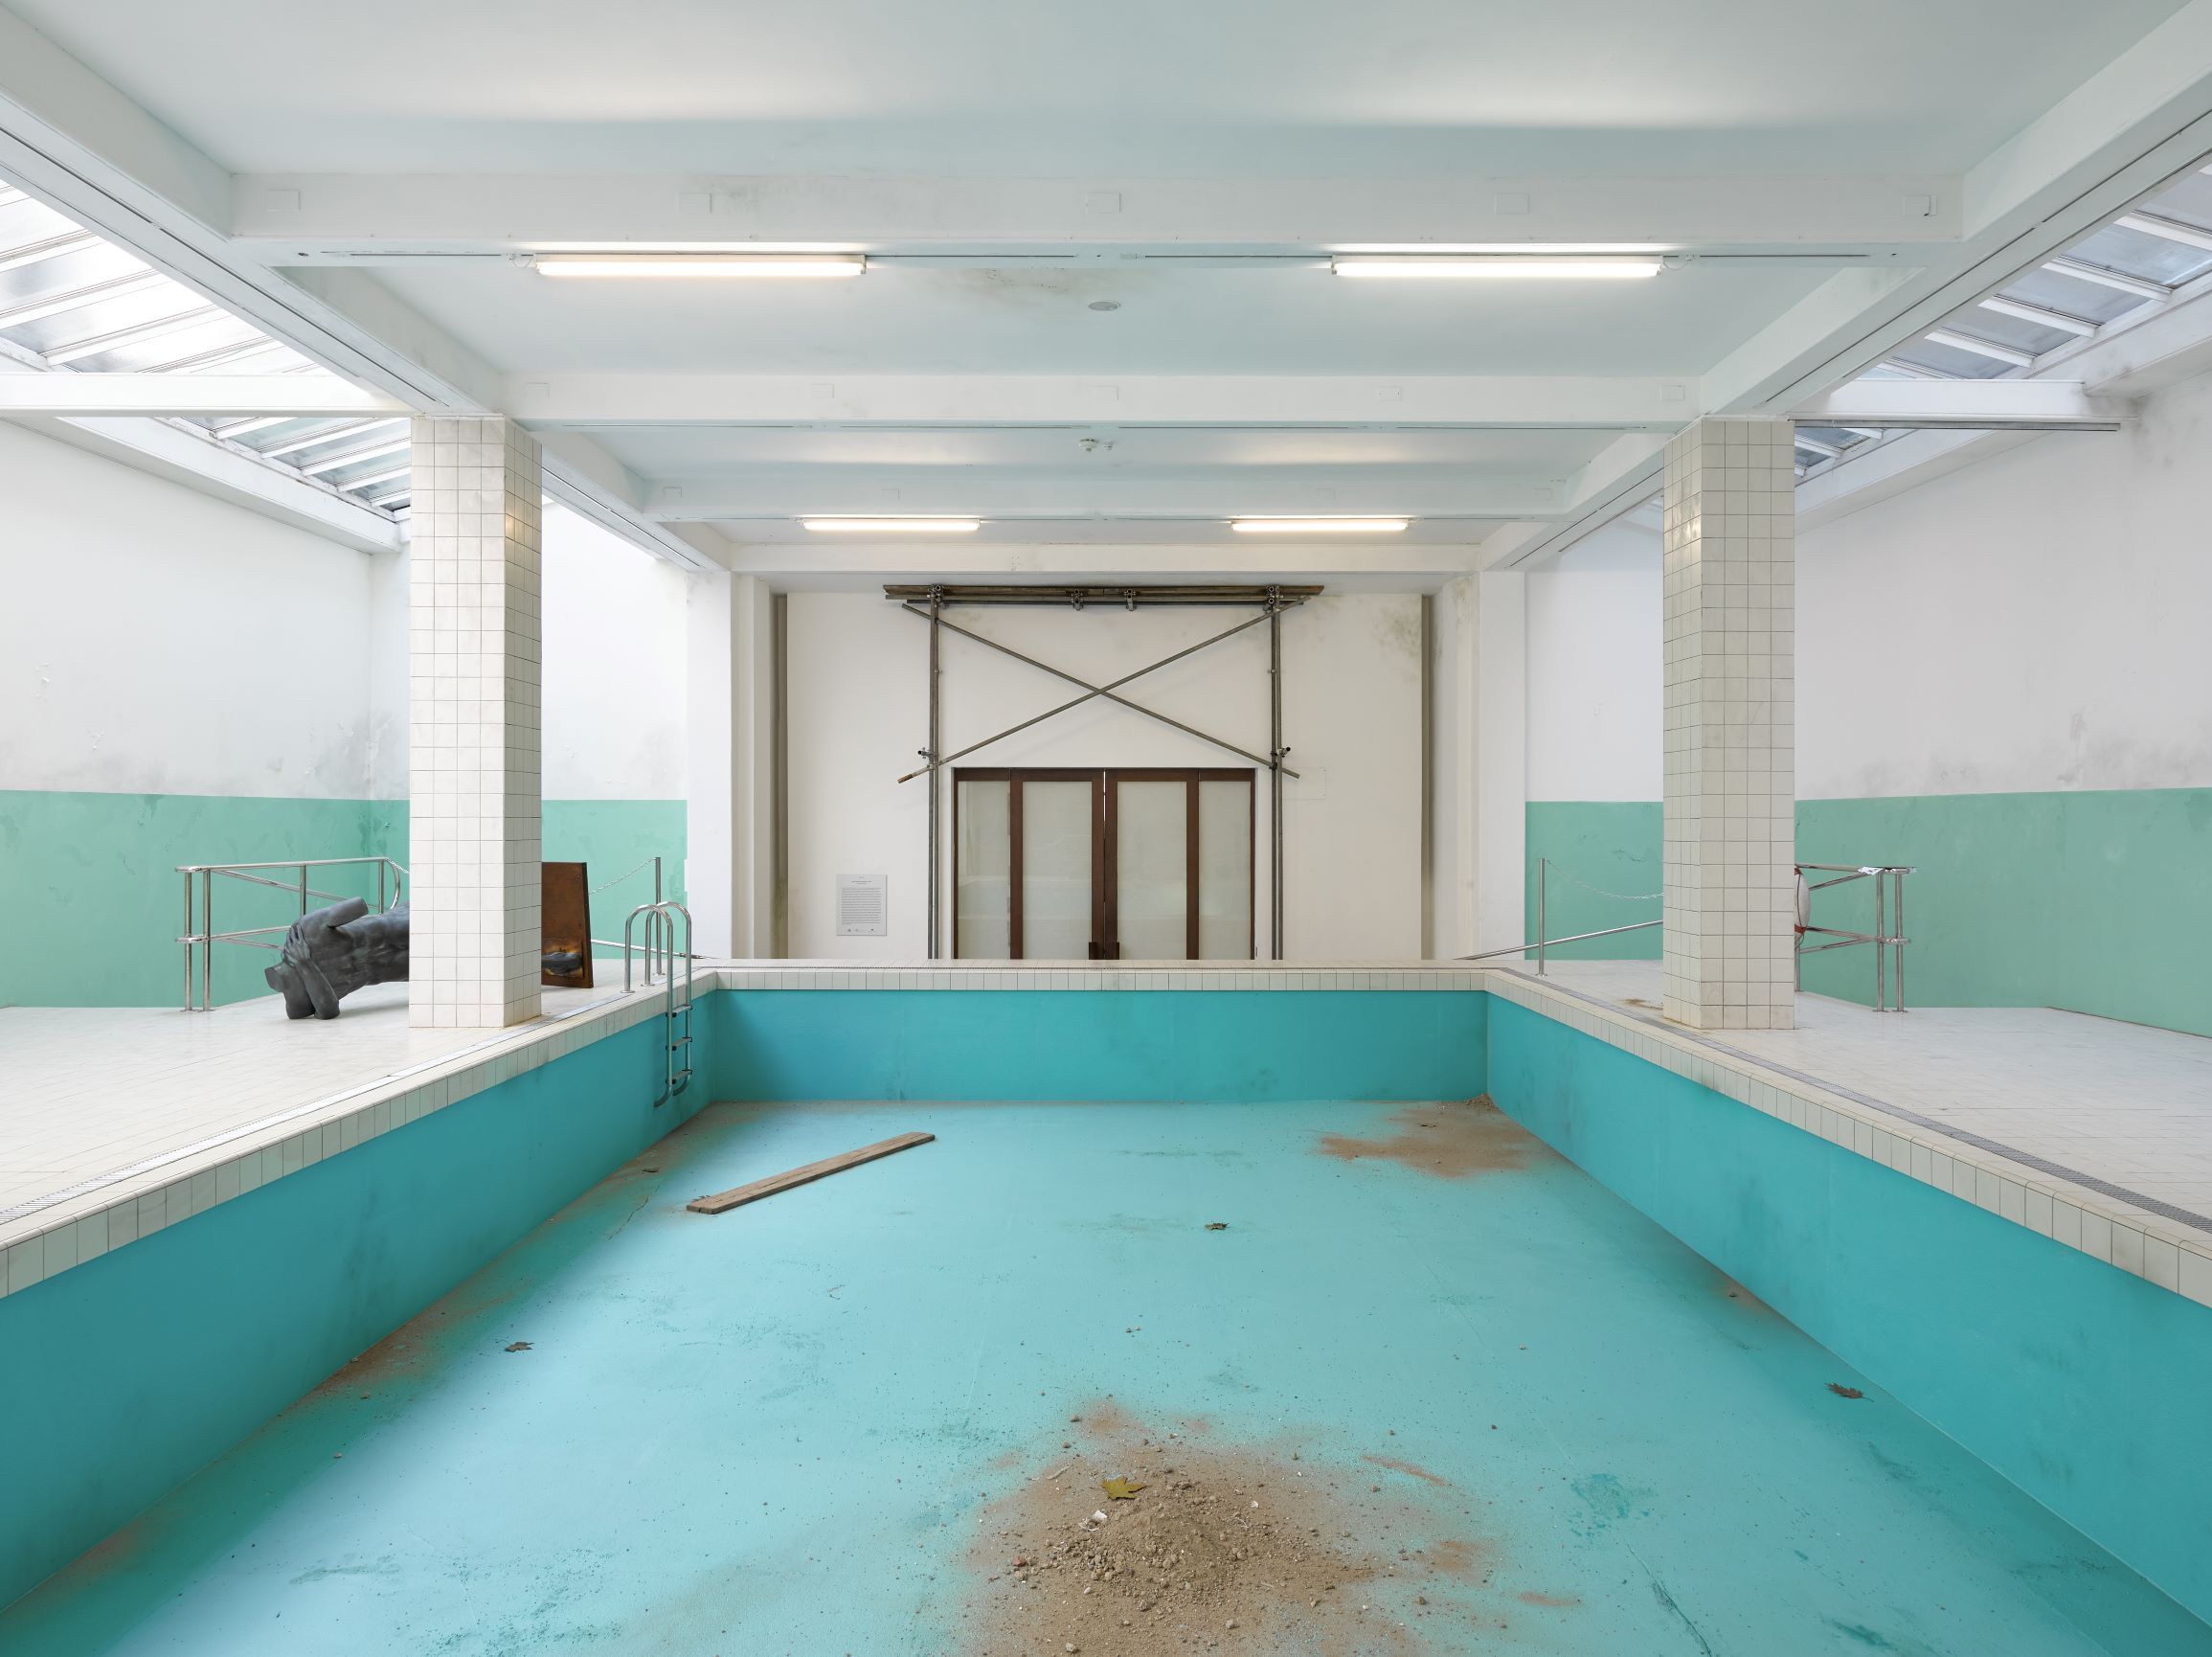 The Whitechapel Pool, 2018; wood, tiles, latex, polished stainless steel, linoleum, paint, 600 x 1450 x 2340 cm, installation view of 'This Is How We Bite Our Tongue', Whitechapel Gallery, London, 2018. Artwork © Elmgreen & Dragset